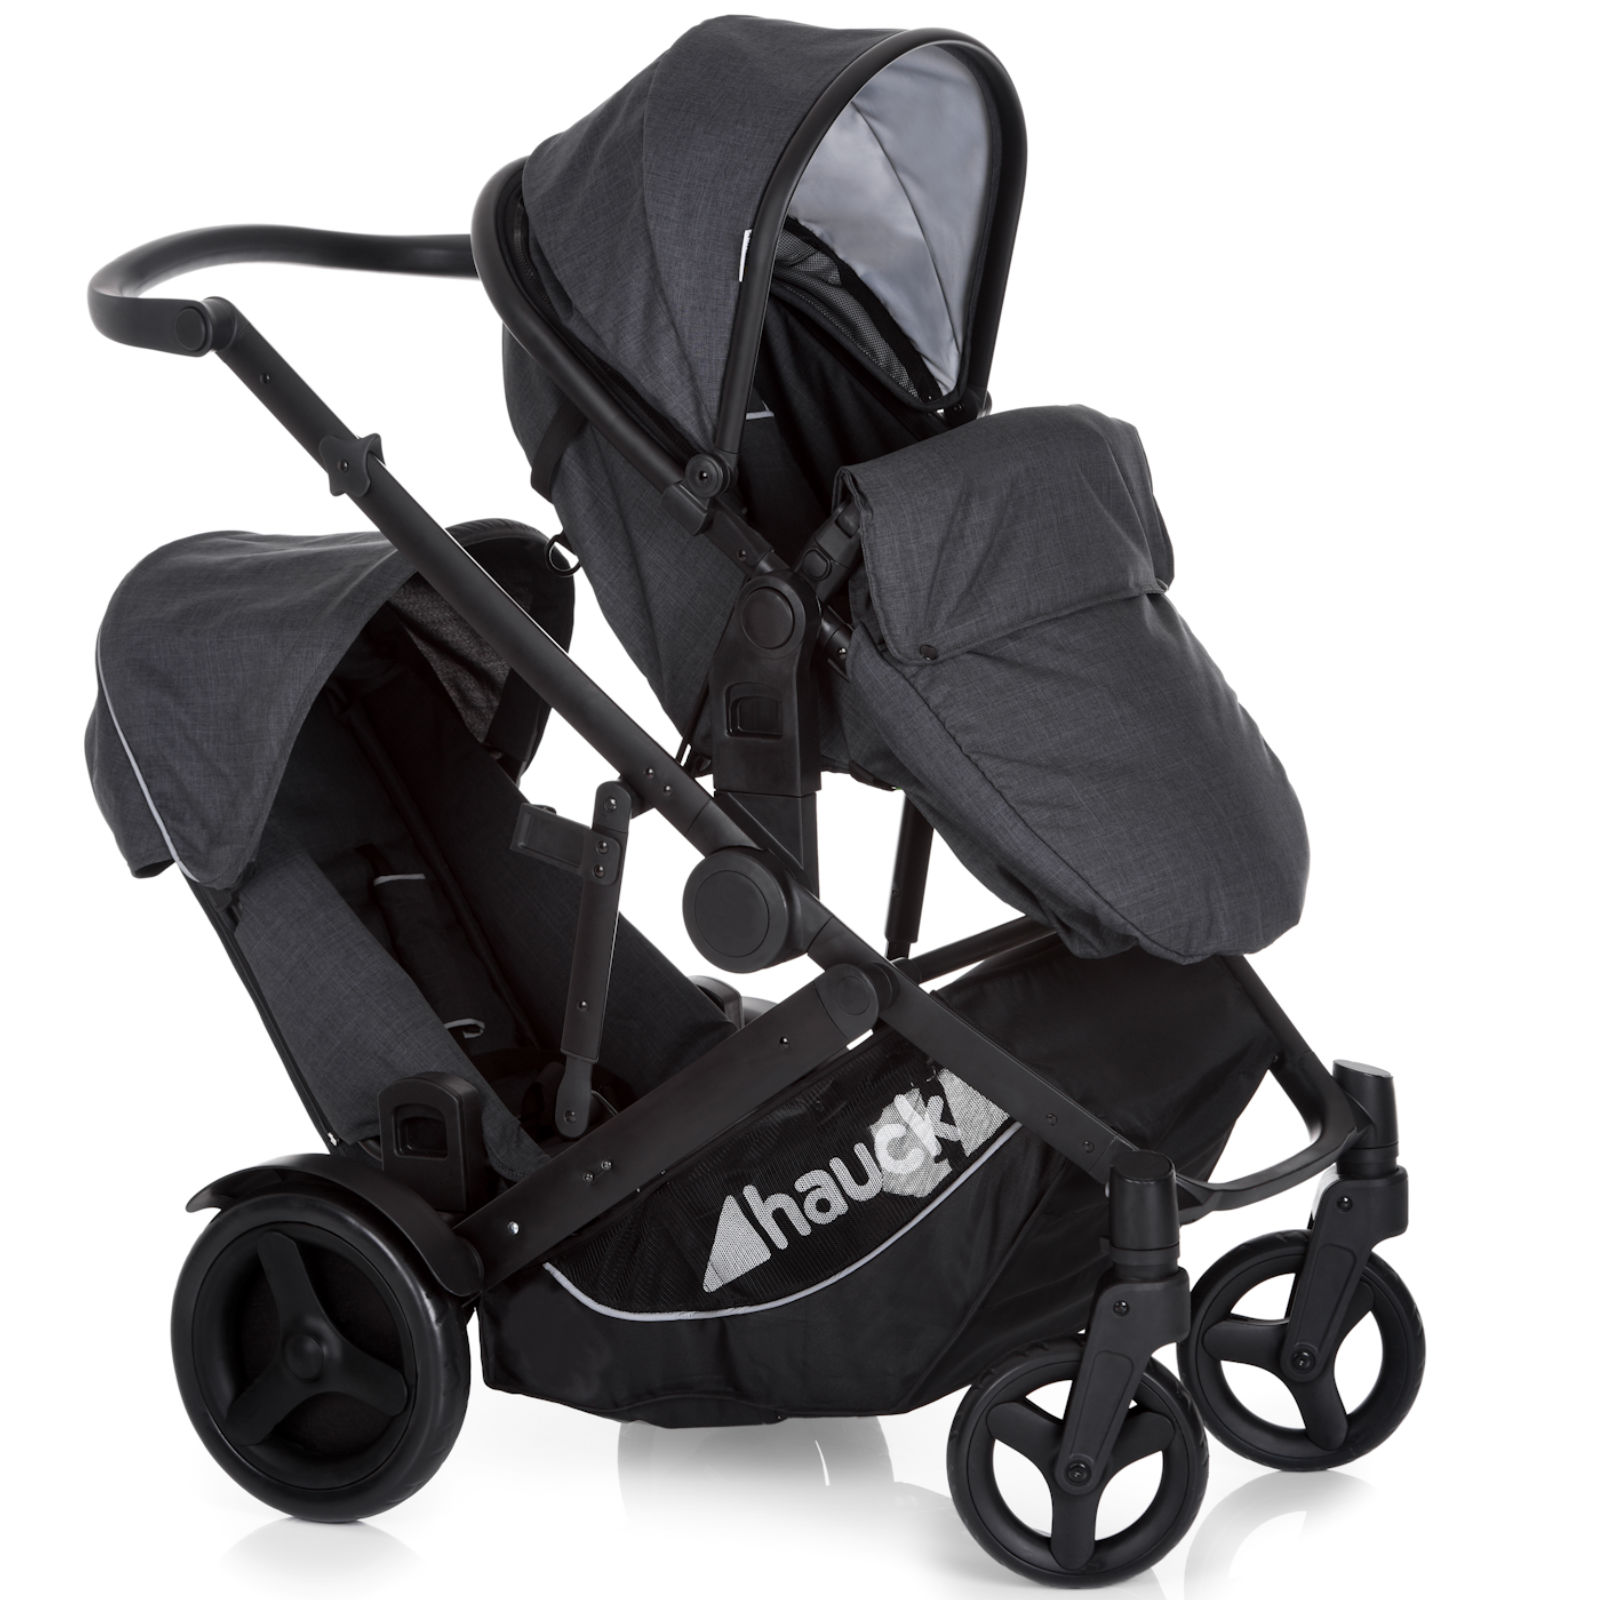 hauck duett 3 tandem pushchair melange charcoal buy at. Black Bedroom Furniture Sets. Home Design Ideas